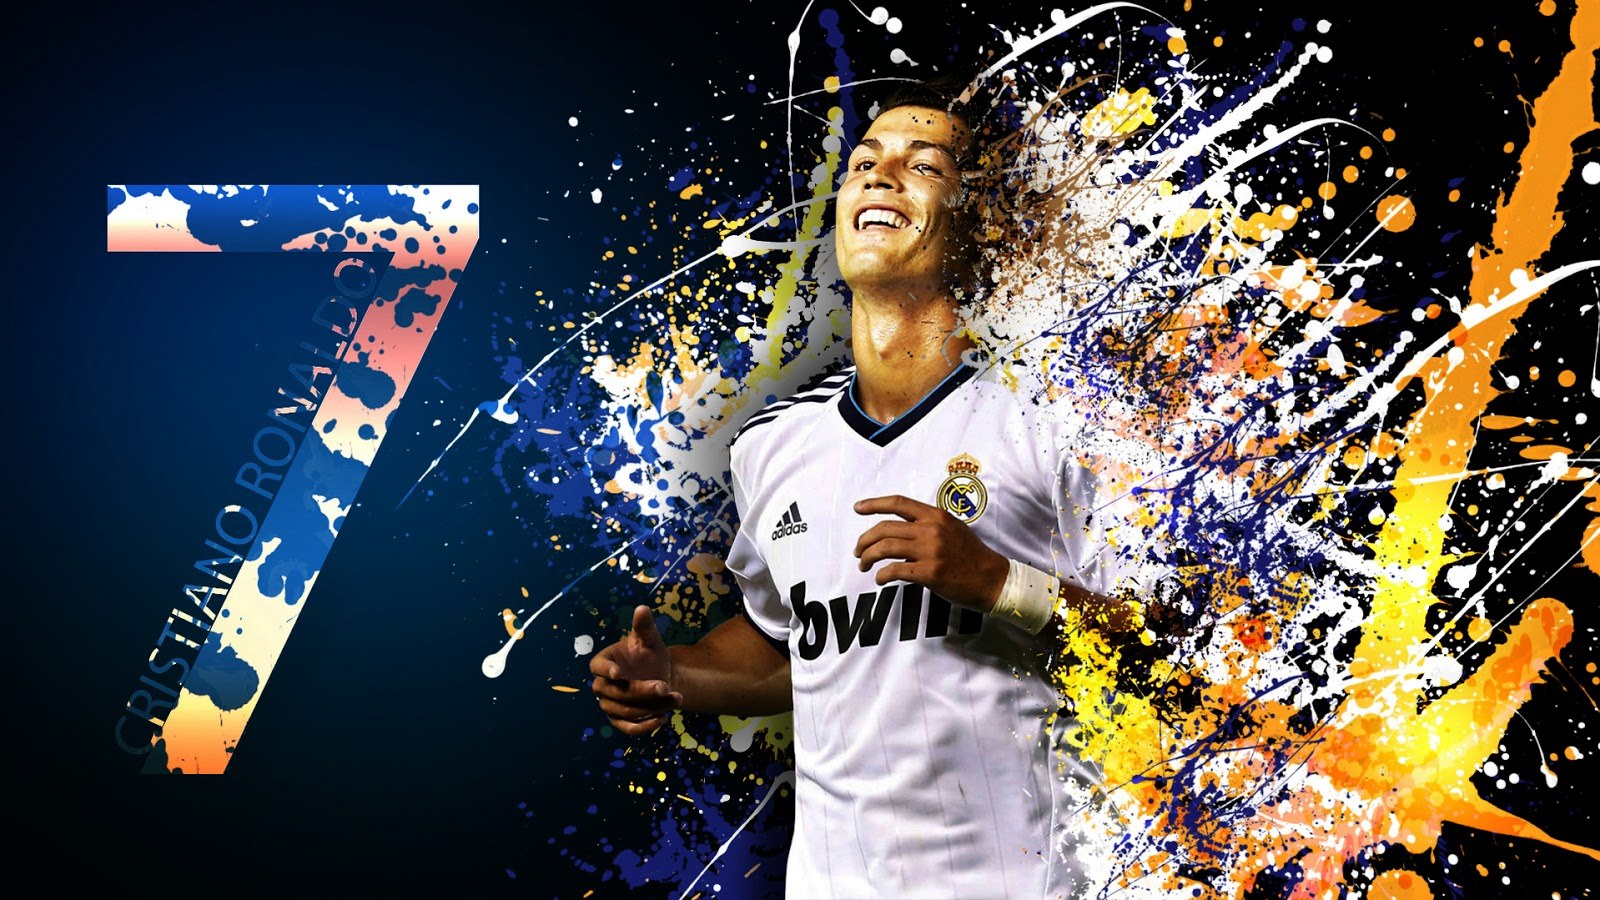 Cristiano Ronaldo Amazing Wallpapers At Best Hd Wallpaper